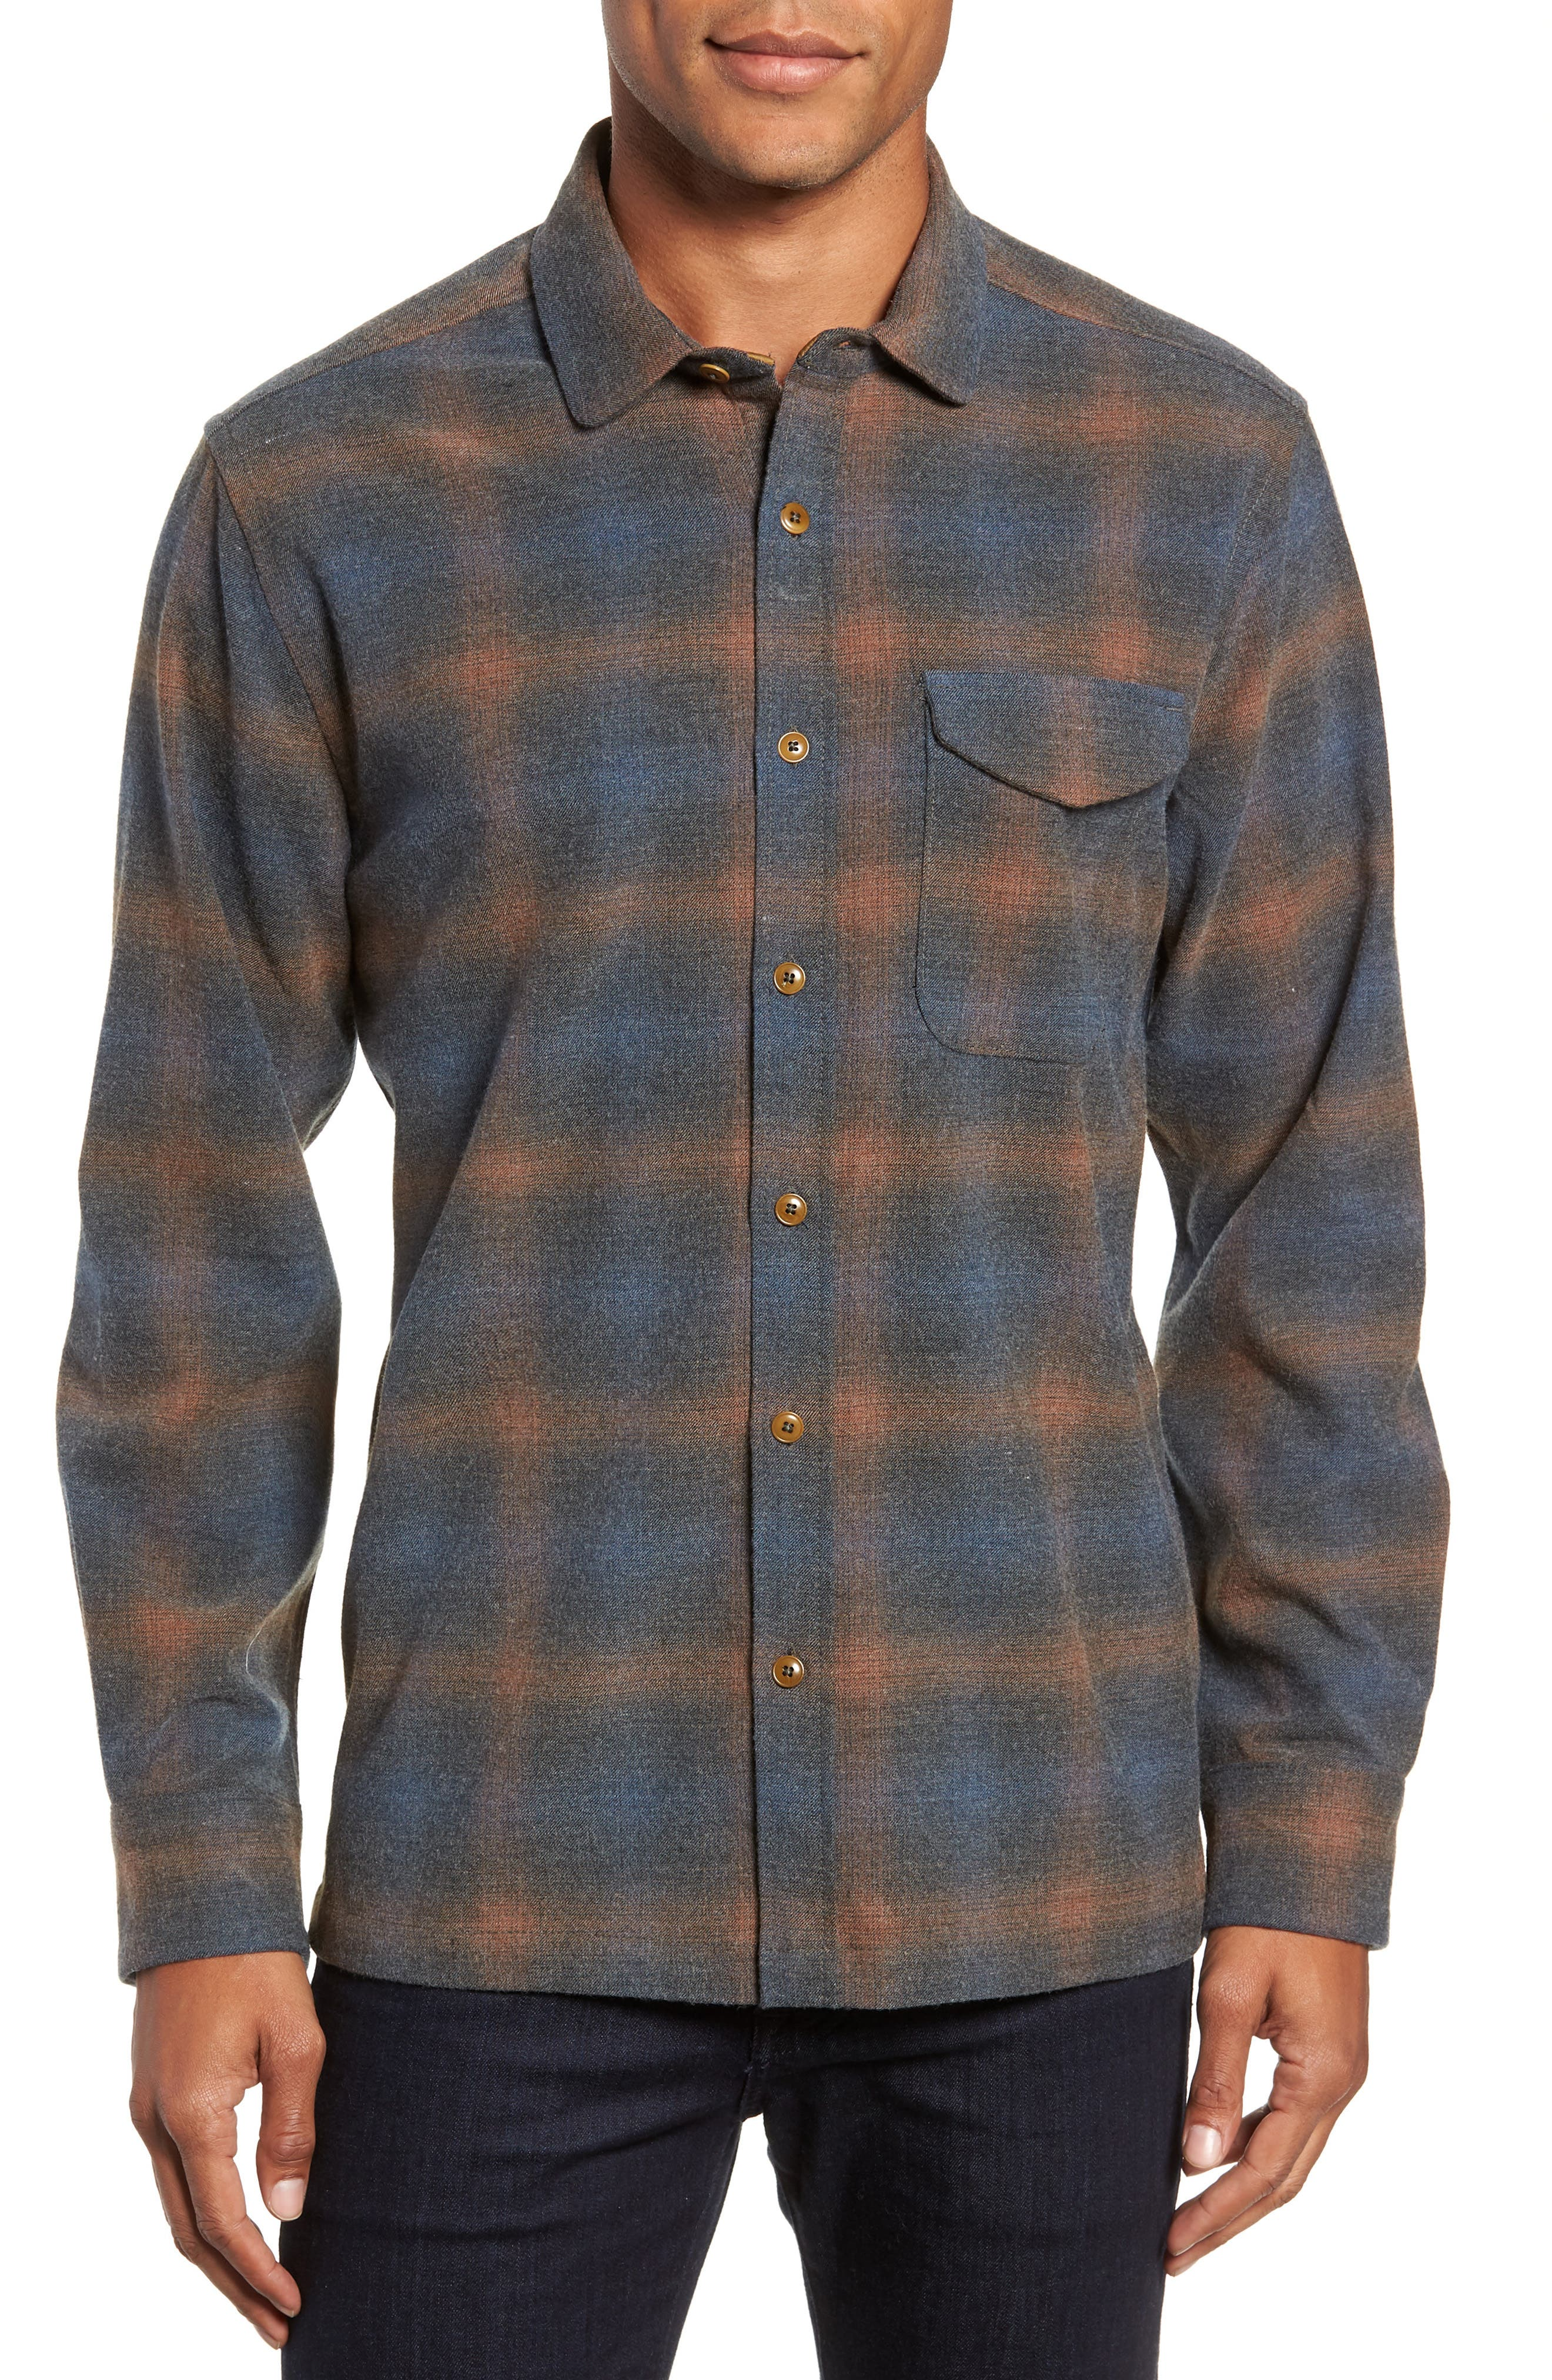 Washburn Regular Fit Plaid Stretch Brushed Flannel Shirt,                         Main,                         color, BLUE WING TEAL HEATHER